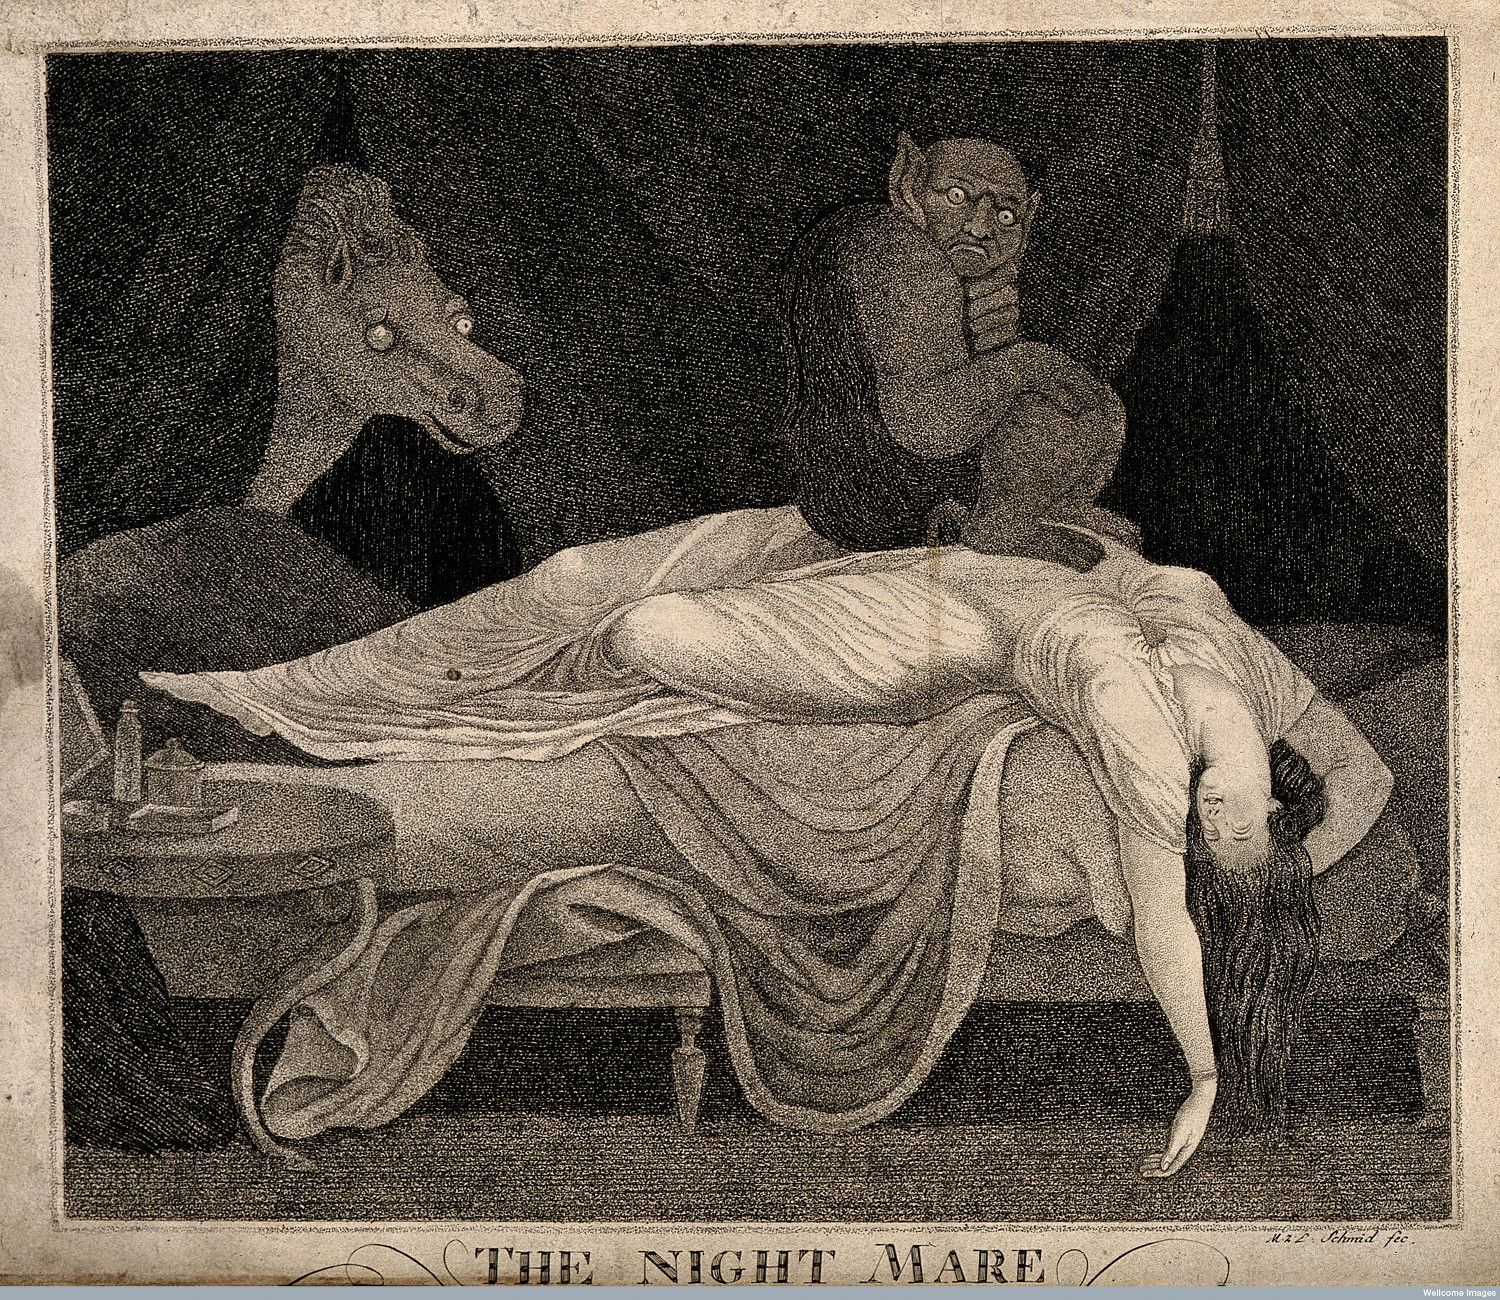 In this engraving by Martin Joachim Schmidt, a devil sits on a sleeping woman's stomach. Historically, sufferers of sleep paralysis often claimed it felt like a demon or witch was perched on their chest. Image courtesy of the Wellcome Library, London